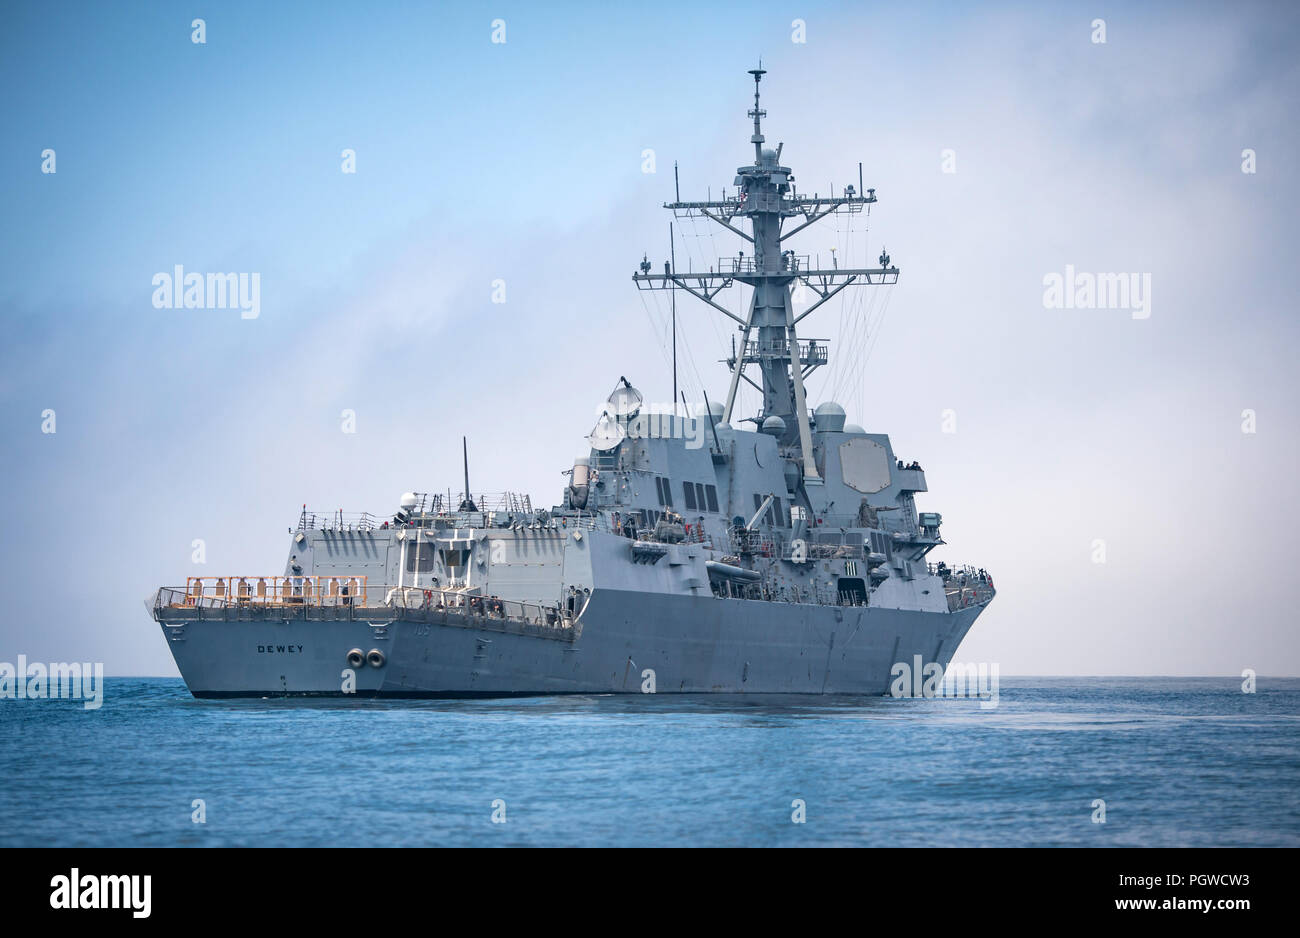 Ddg 105 Stock Photos & Ddg 105 Stock Images - Alamy